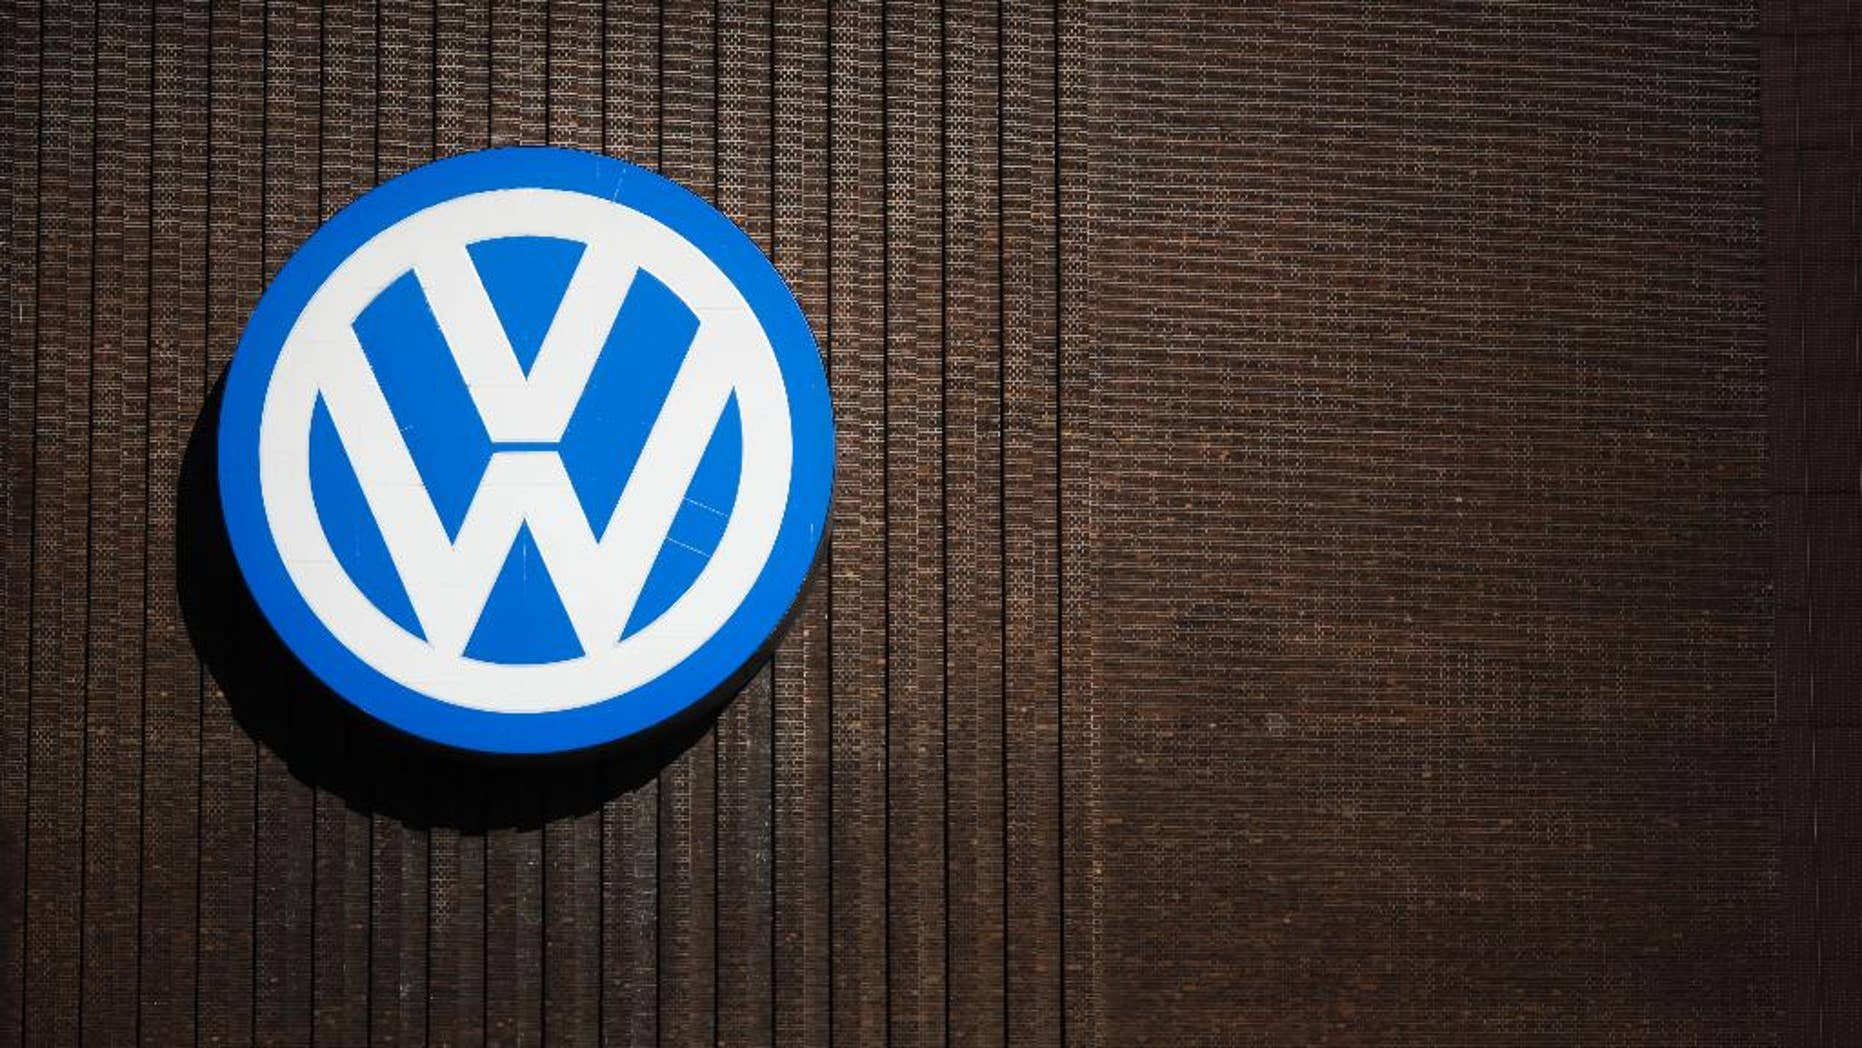 FILE - In this Sept. 29, 2015, file photo, a brand sign of the Volkswagen car company is seen at the car factory in Wolfsburg, Germany. More than a decade ago, the U.S. Environmental Protection Agency helped develop a technology that ultimately allowed an independent laboratory to catch Volkswagen's elaborate cheating on car emissions tests. But EPA did not apply that technology on its own tests of diesel passenger cars and instead focused on trucks,thus missing its best chance to foil the German carmaker's deception as early as 2007. (AP Photo/Markus Schreiber, File)